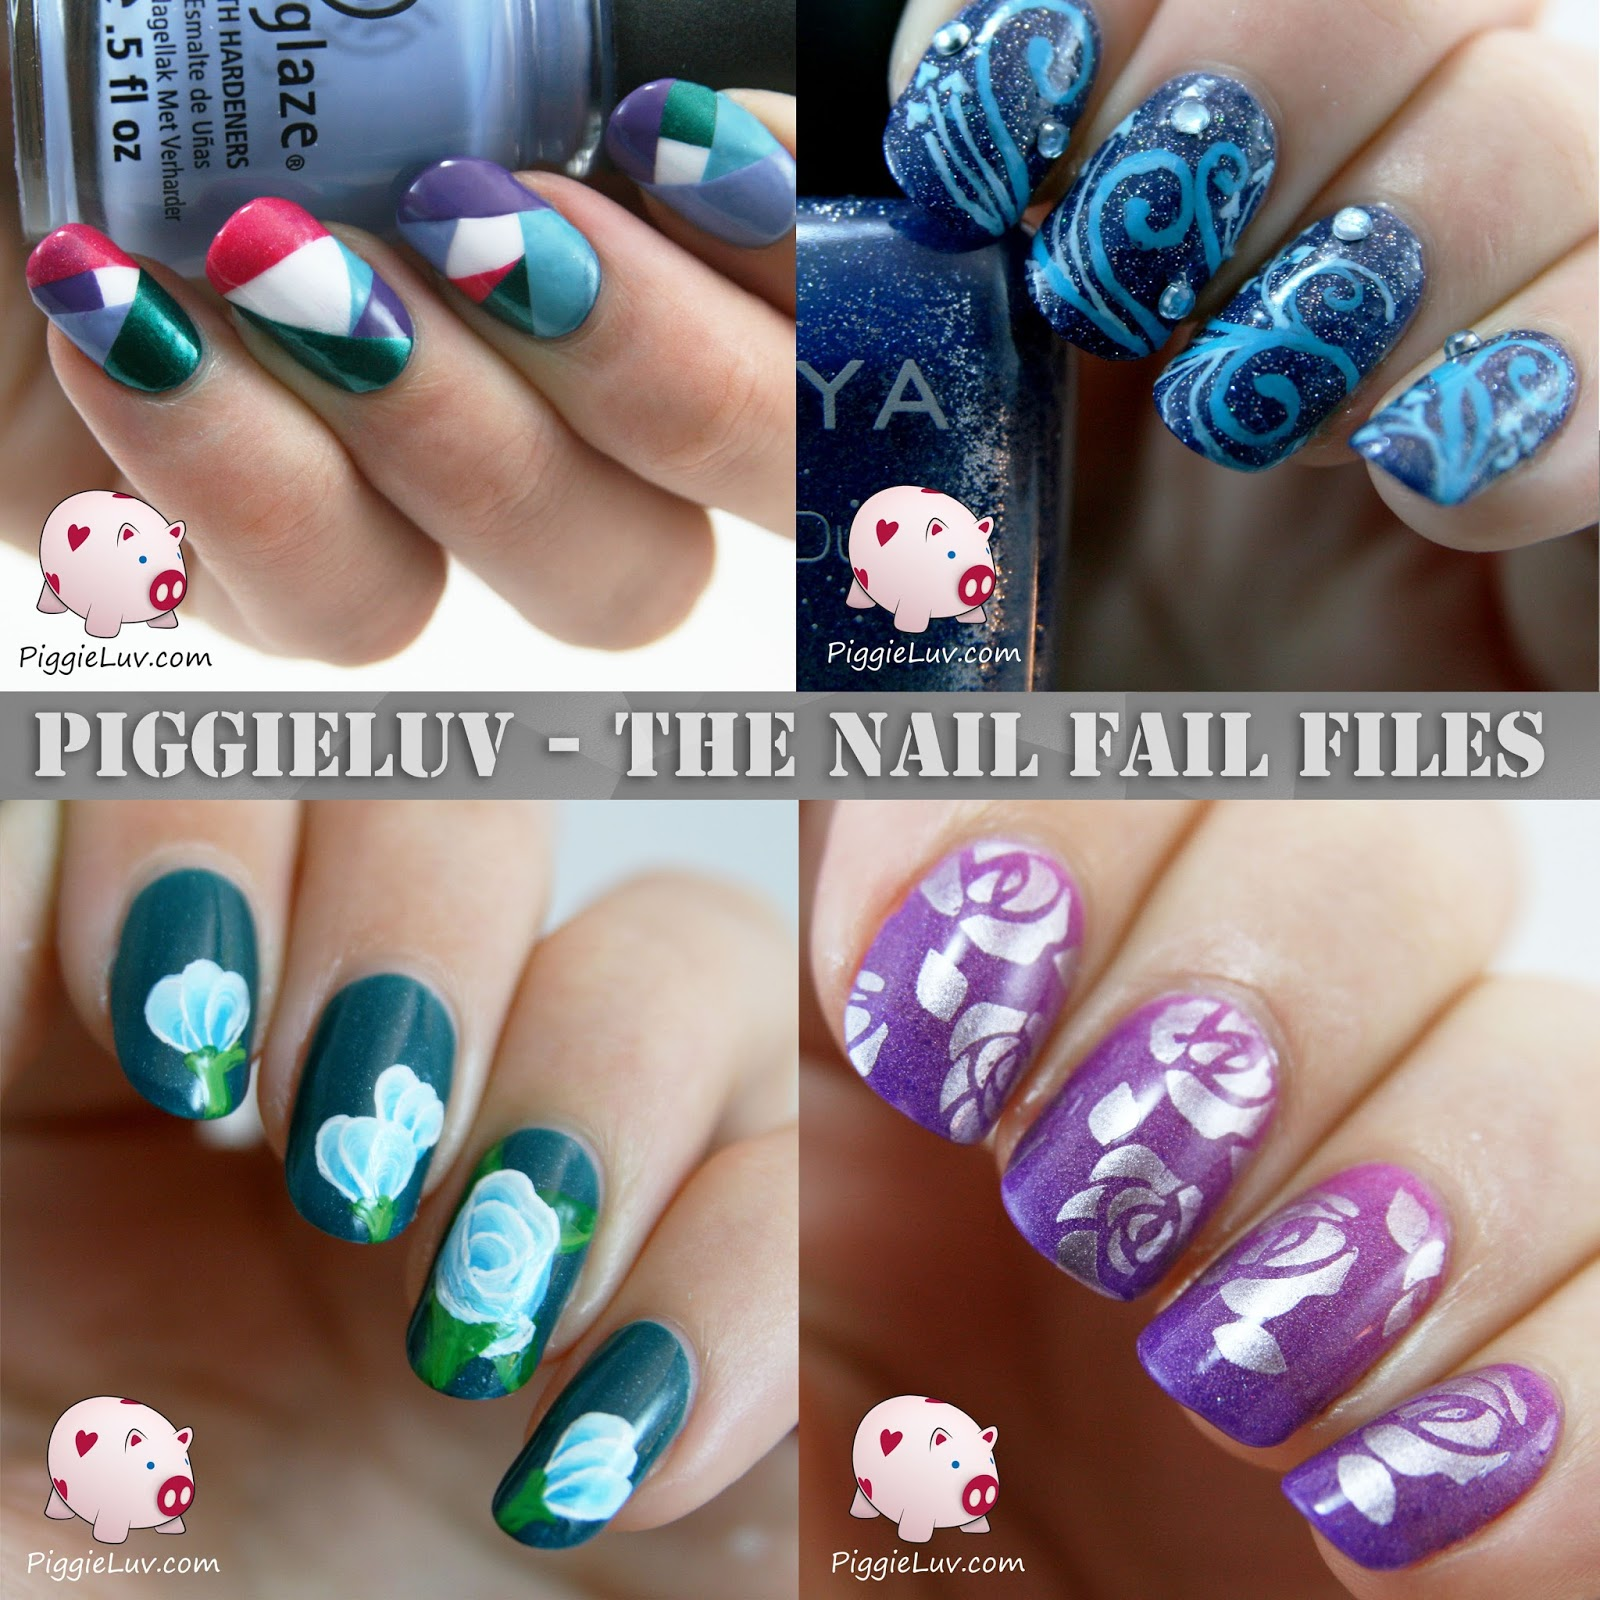 Piggieluv The Nail Fail Files Second Episode